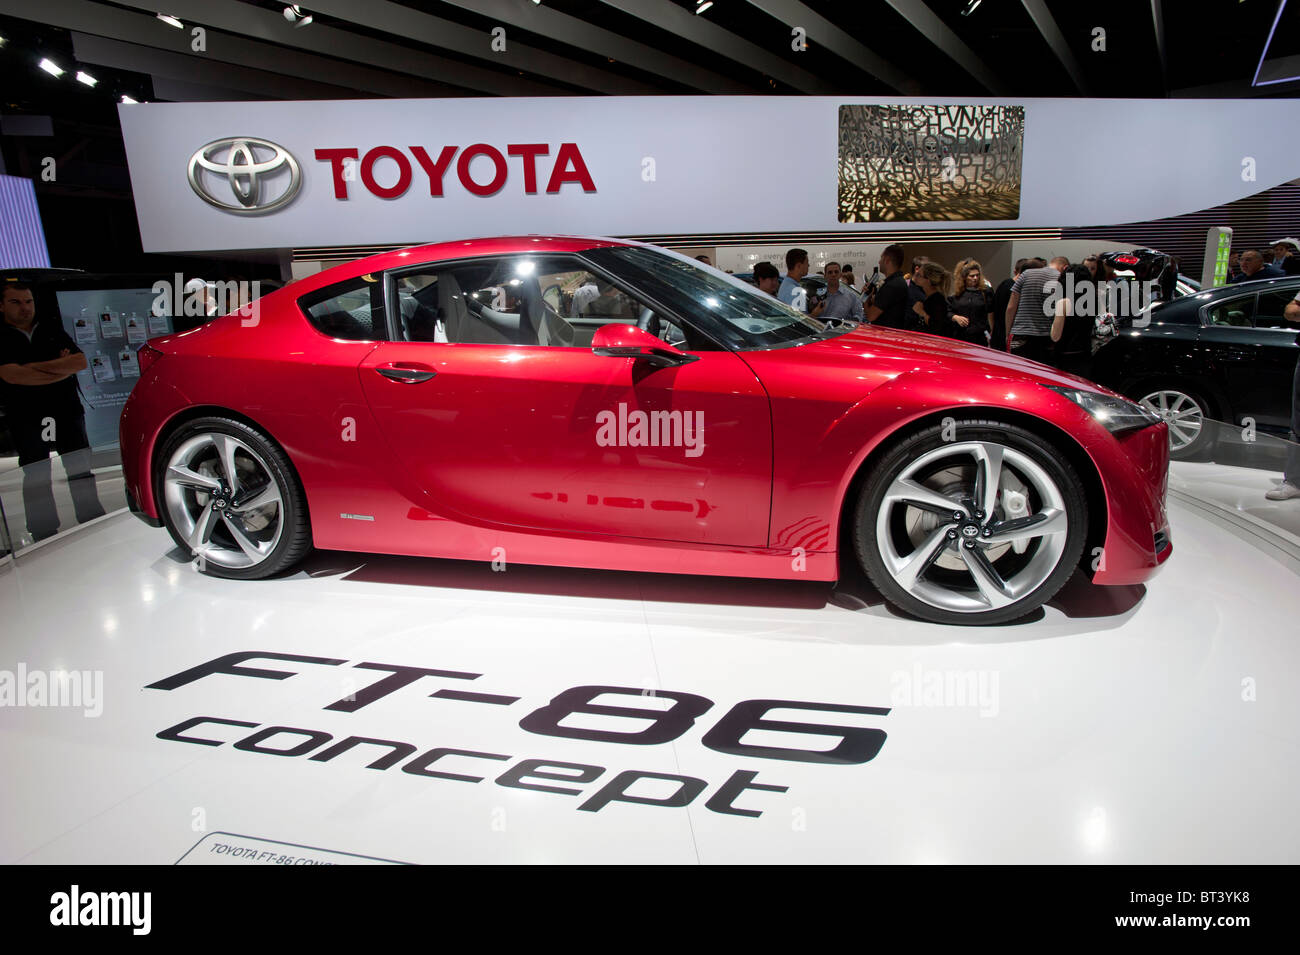 Toyota FT 86 Concept Car At Paris Motor Show 2010   Stock Image